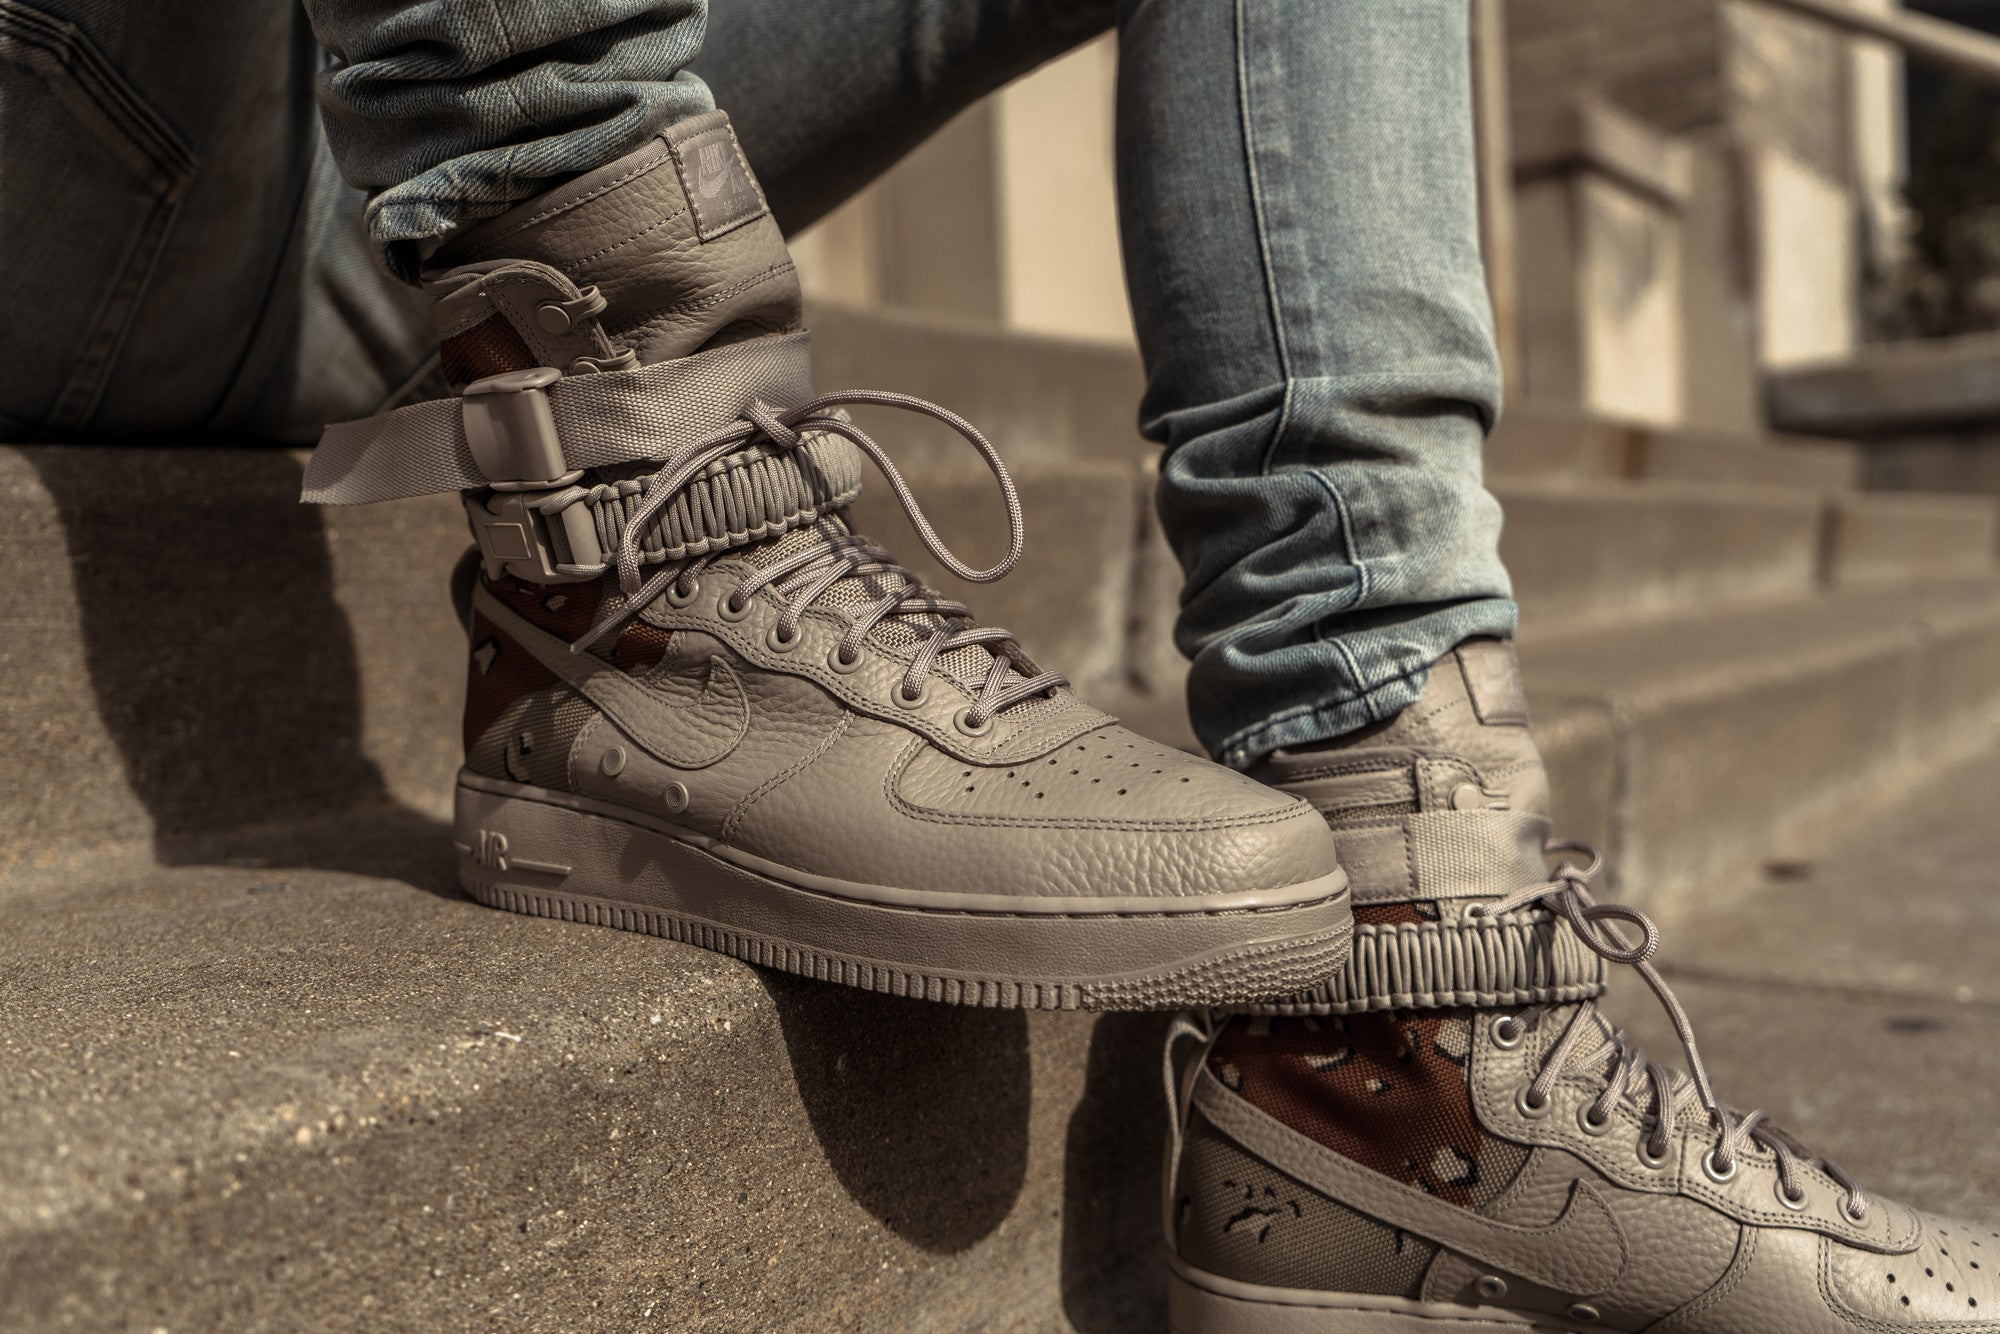 afacae92fb46d Nike Special Field Air Force 1 'Desert Camo' at Notre